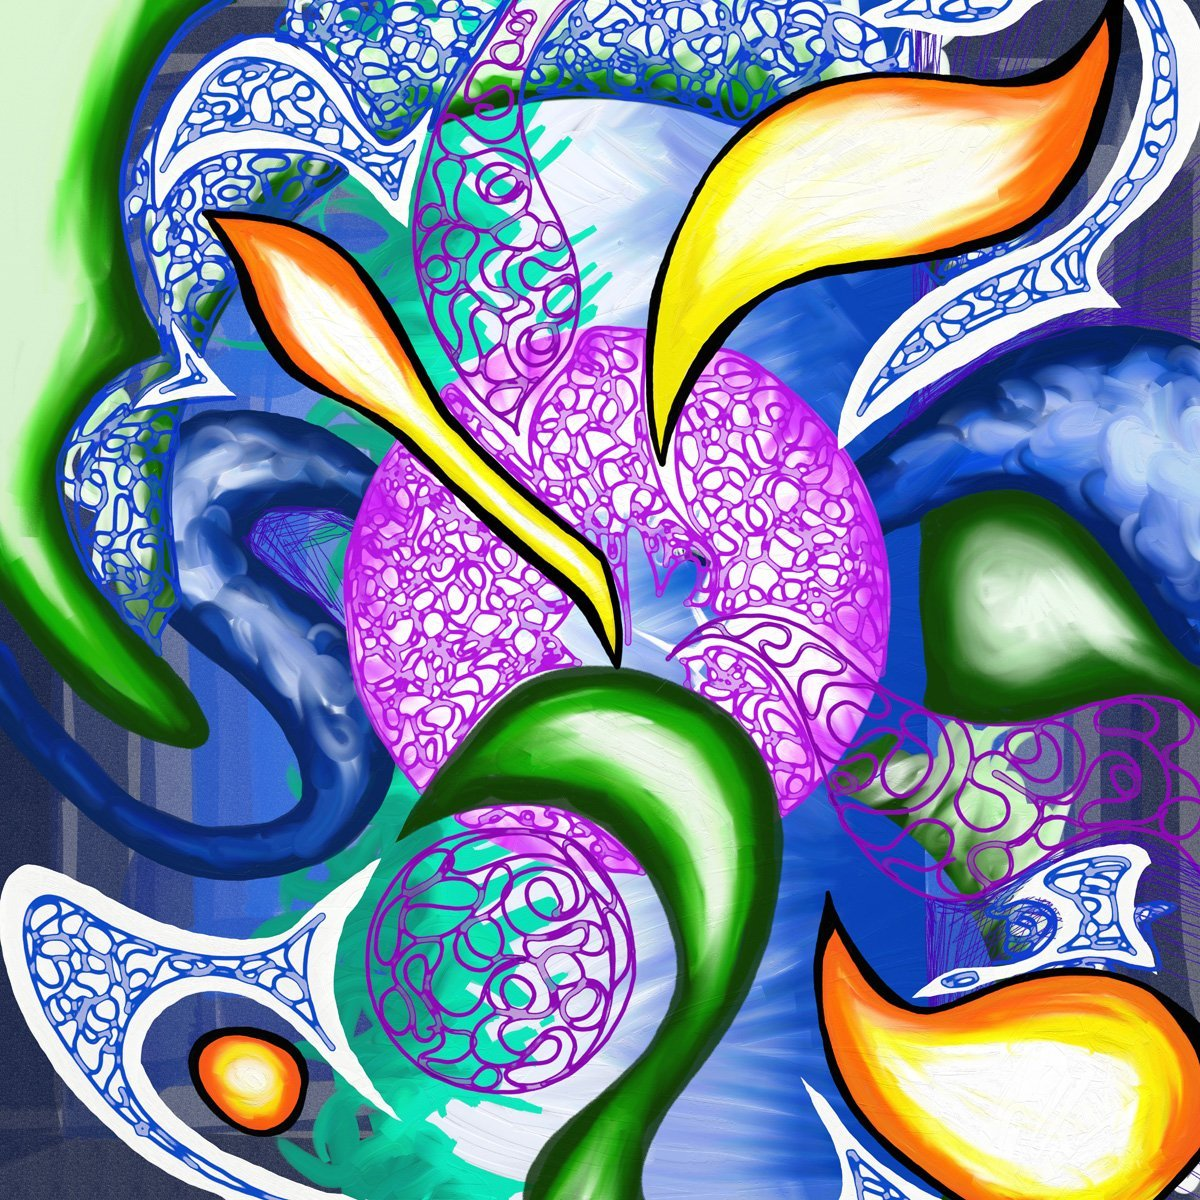 The image shows a piece of artwork by Jina Wallwork. It is a digital painting with abstract subject matter. Stylistically this piece of artwork has links with abstract art.